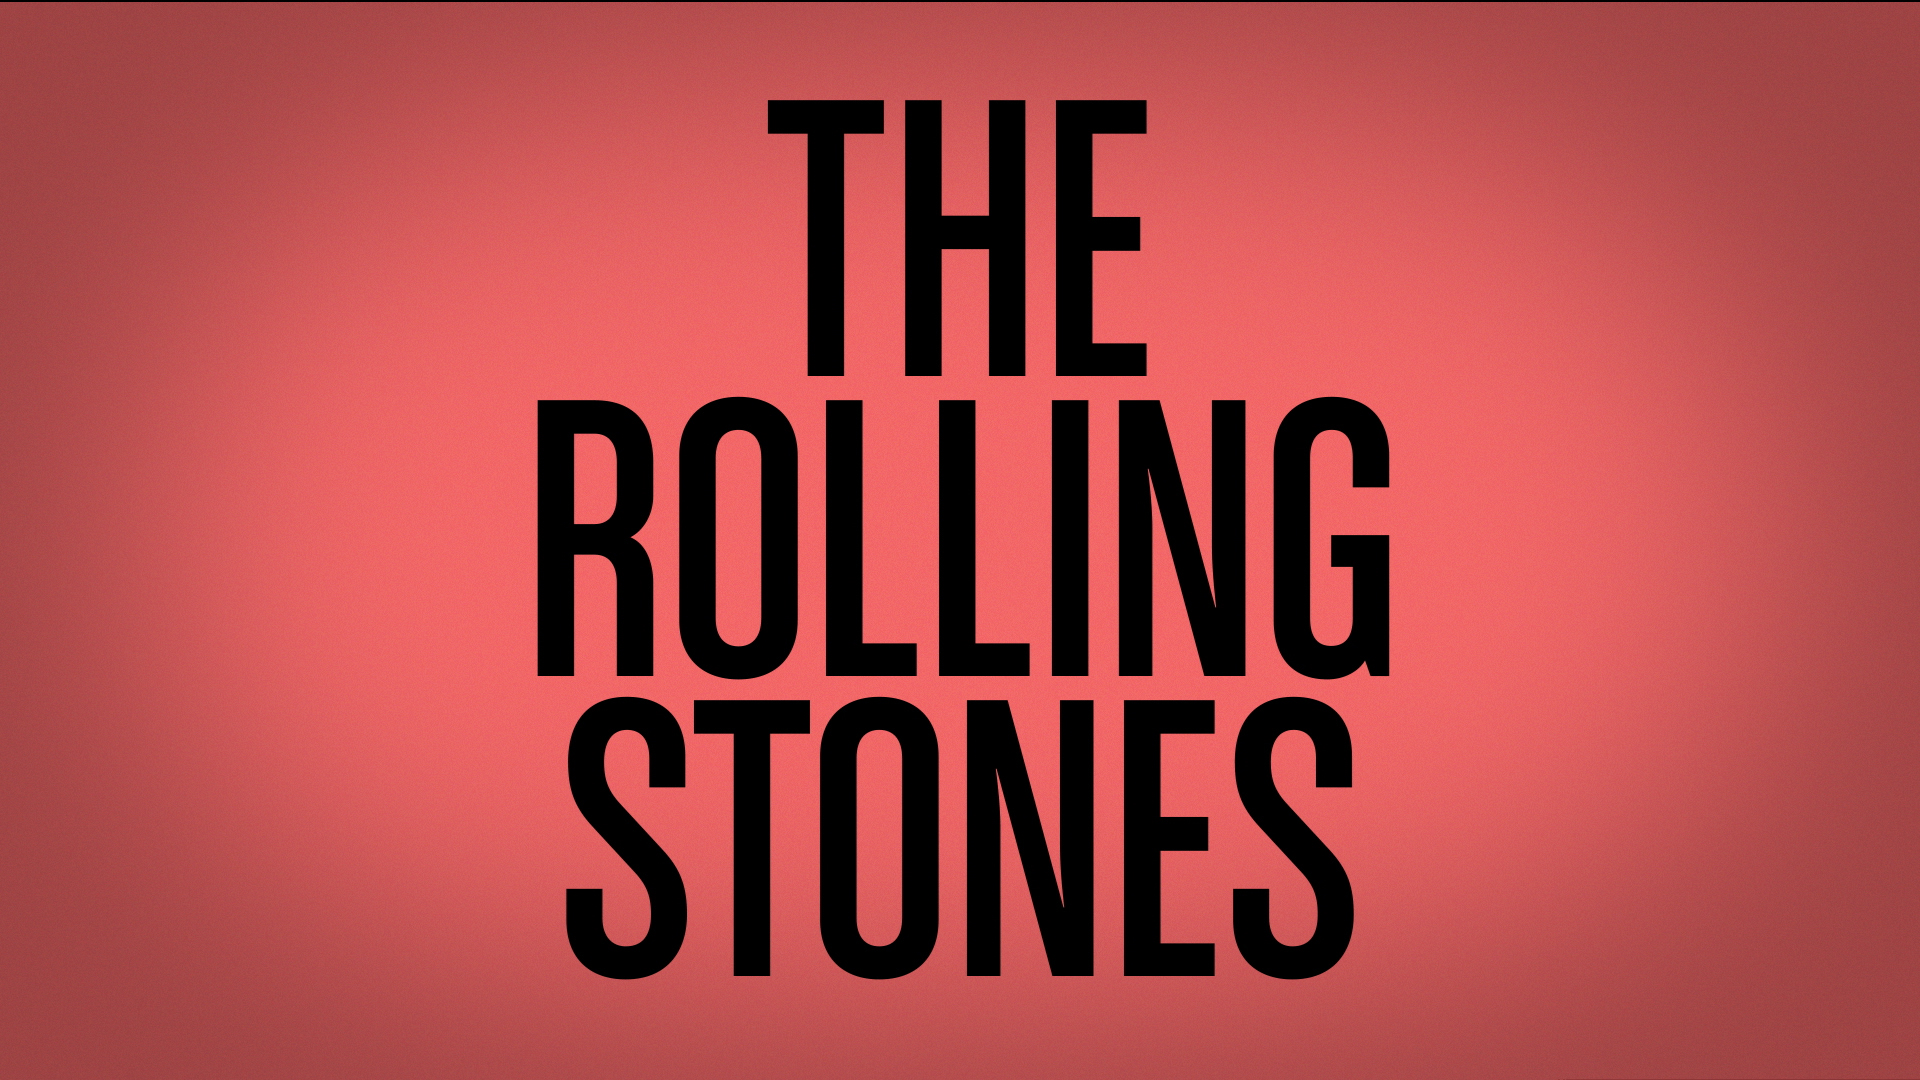 OCT_TRAILER_HD_Stones